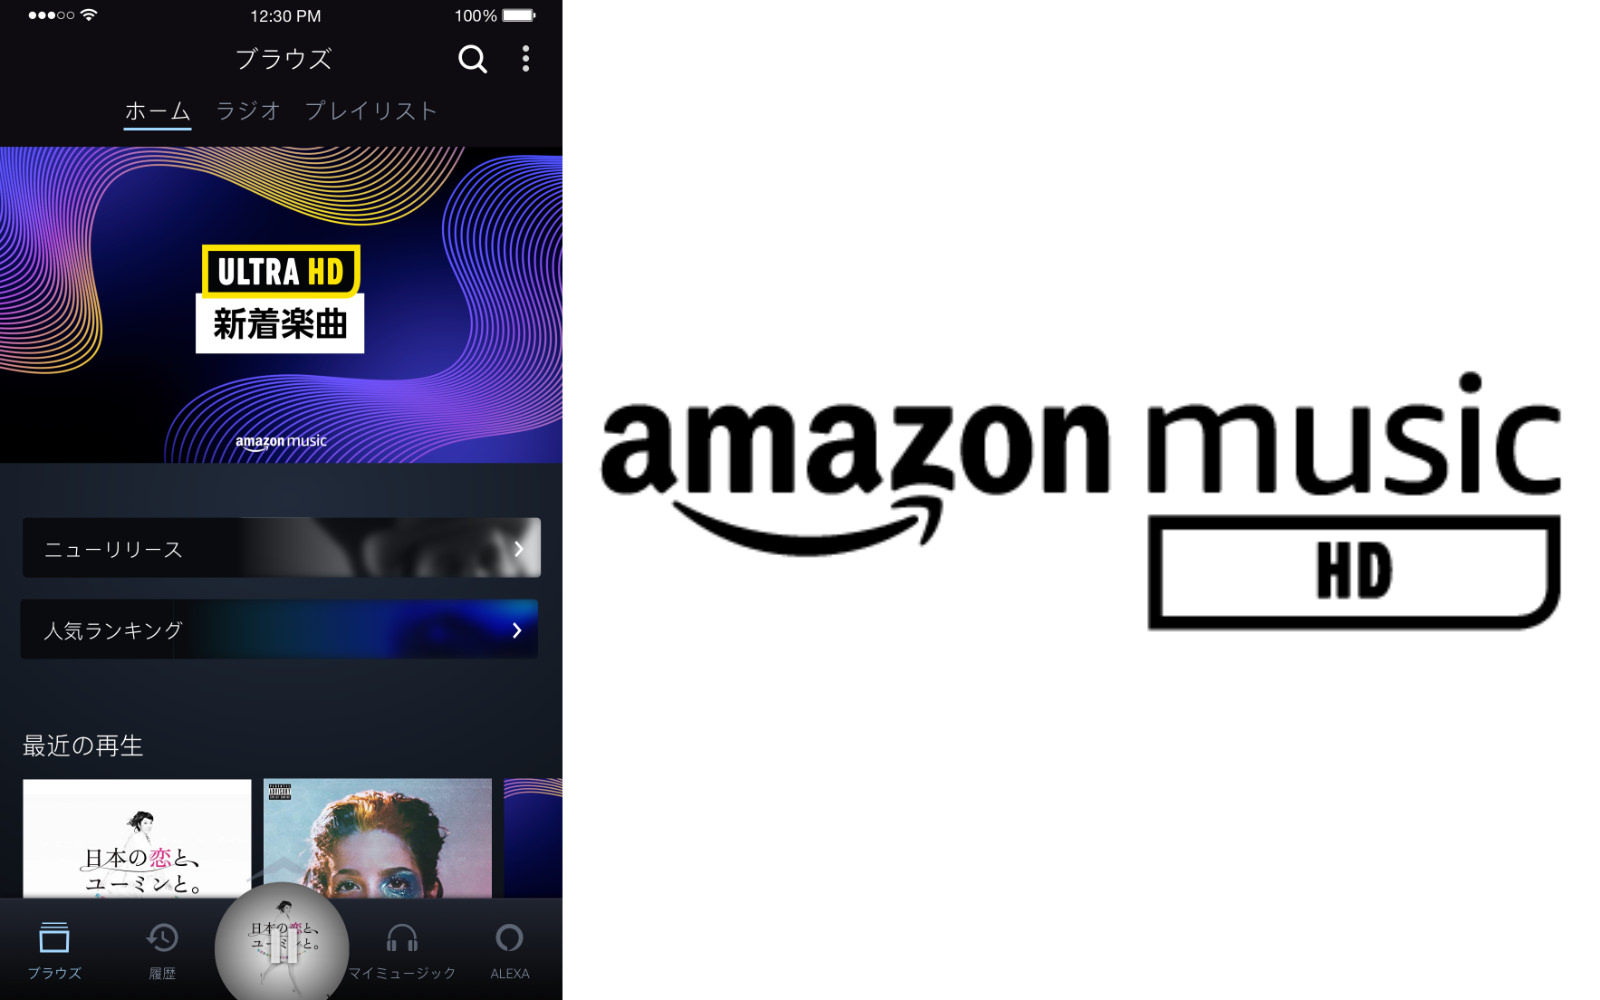 Amazon Music HD